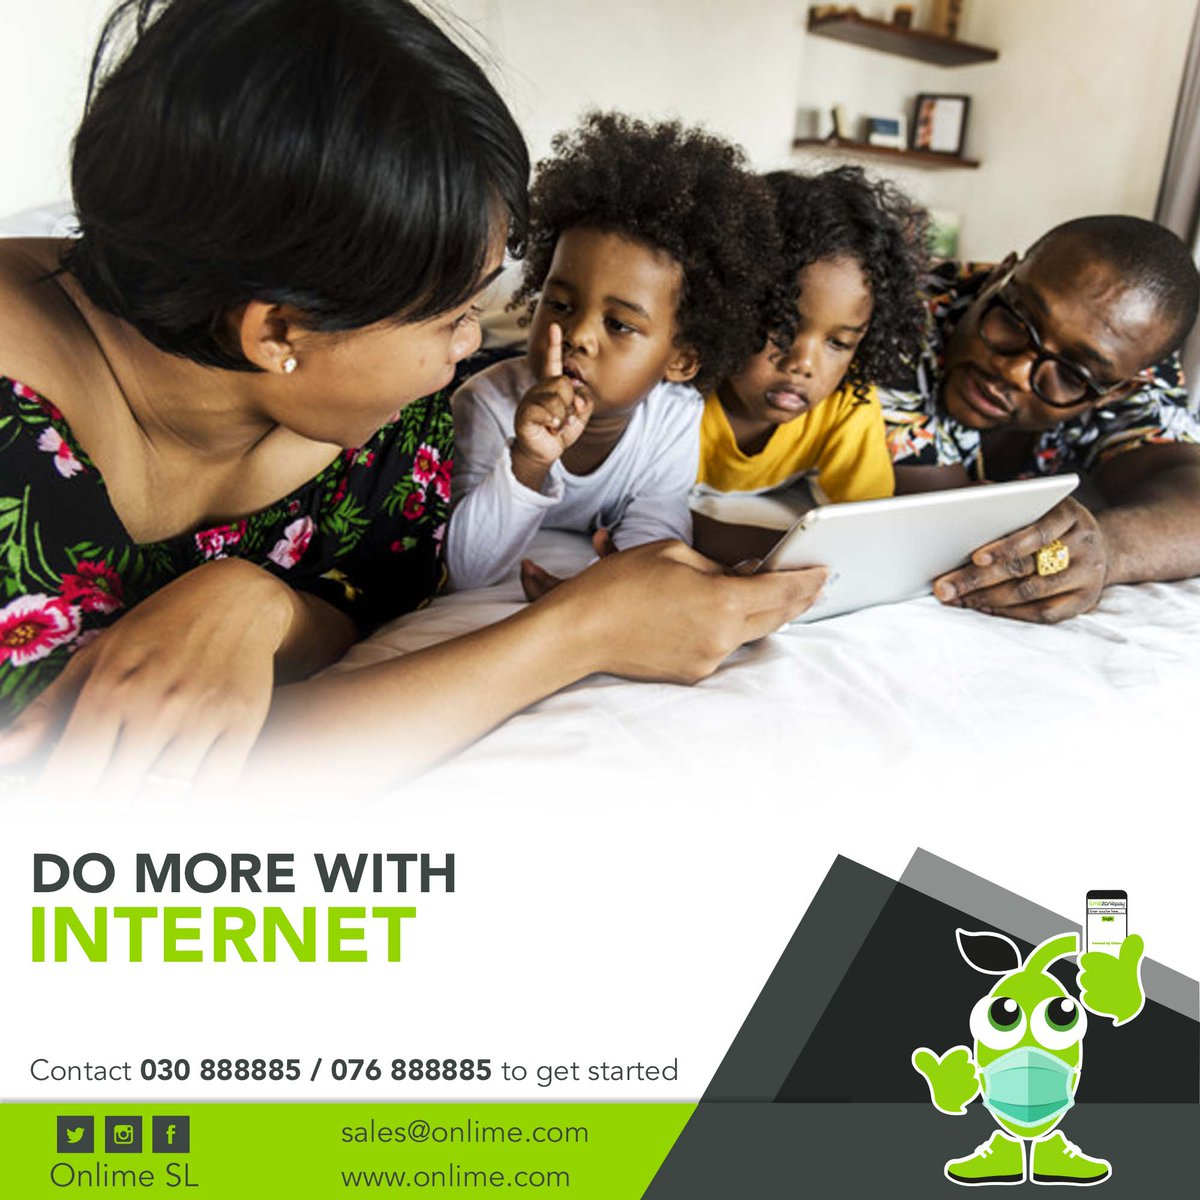 Do more with #Internet and bring loved ones closer💏. Switch to #OnlimeInternet today and feel the difference. Call 076 888885 / 030 888885 or email sales@onlime.sl to get started. #SierraLeone #Freetown #SaloneTwitter https://t.co/TaCAqIa8w2